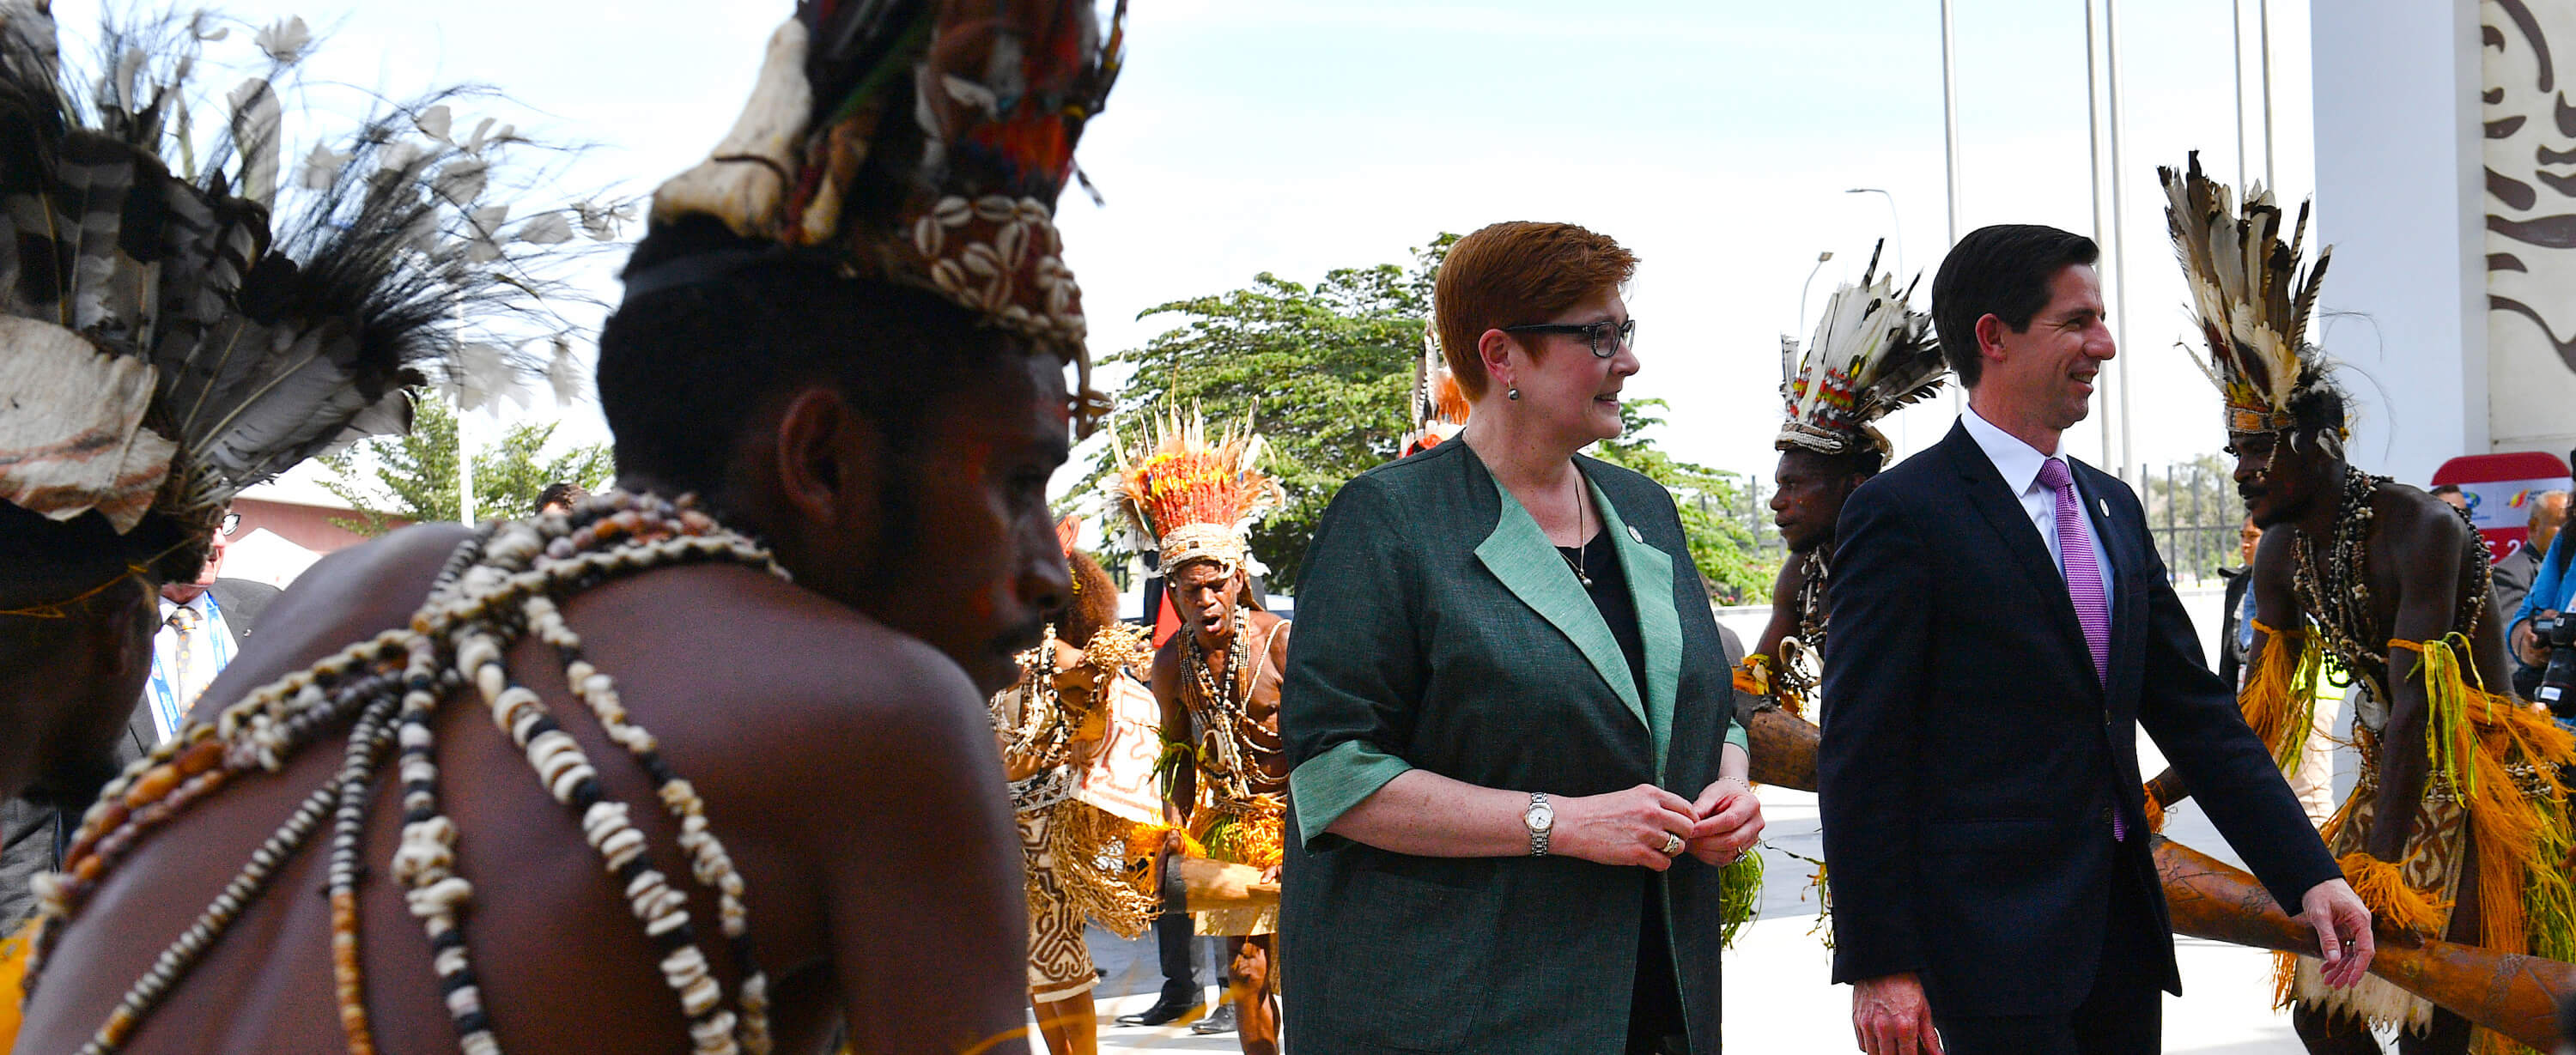 Australia's Foreign Minister Marise Payne and Trade Minister Simon Birmingham arrive at the APEC ministerial meeting in Port Moresby. (Photo:Saeed Khan/Getty)